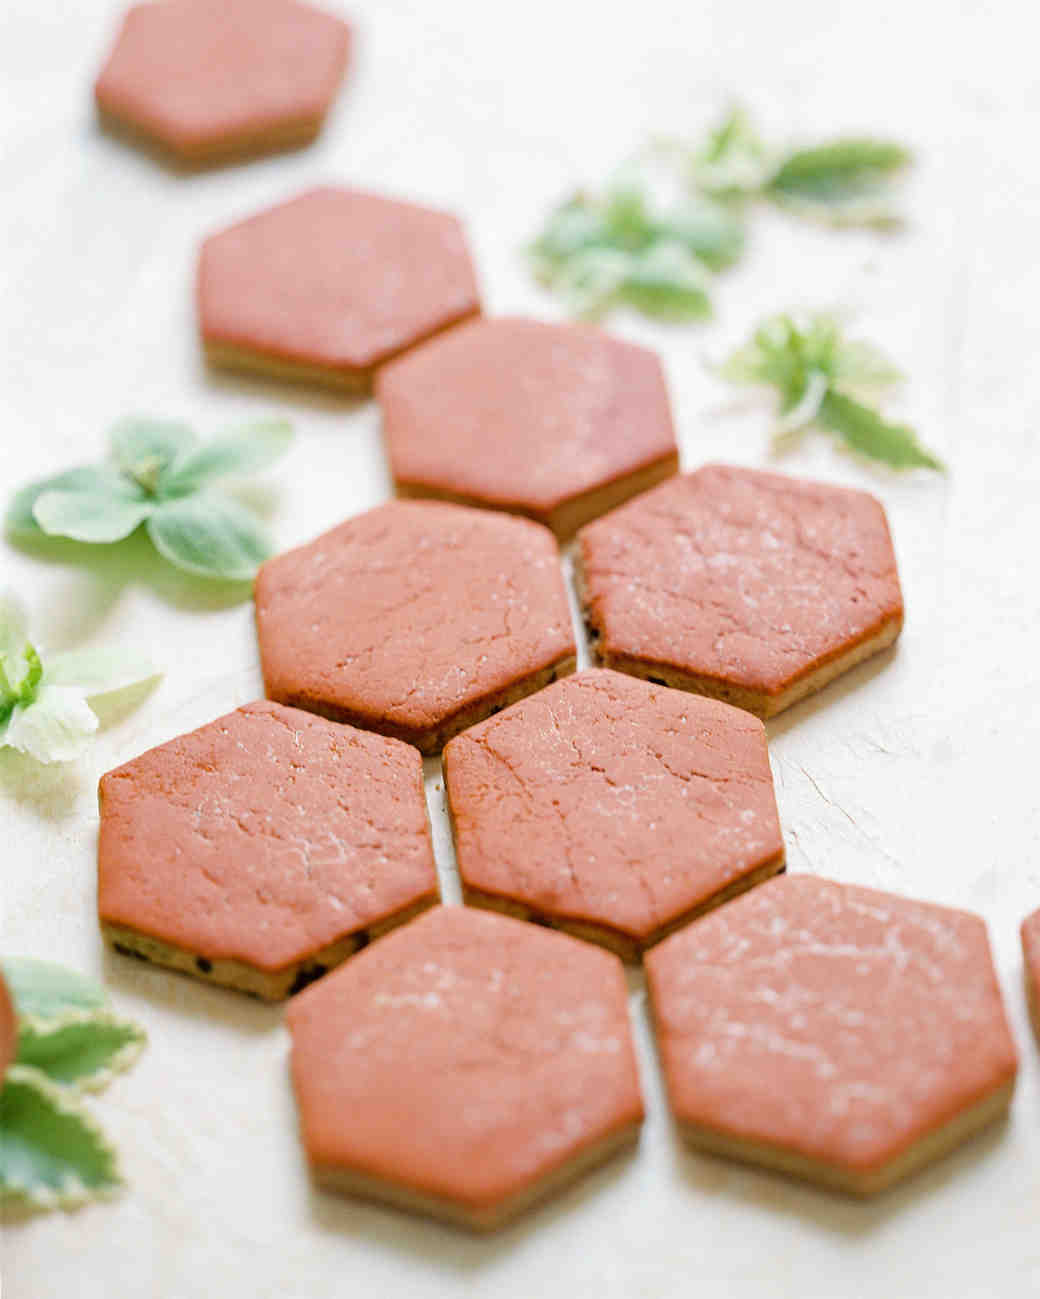 terracotta colored hexagonal cookies